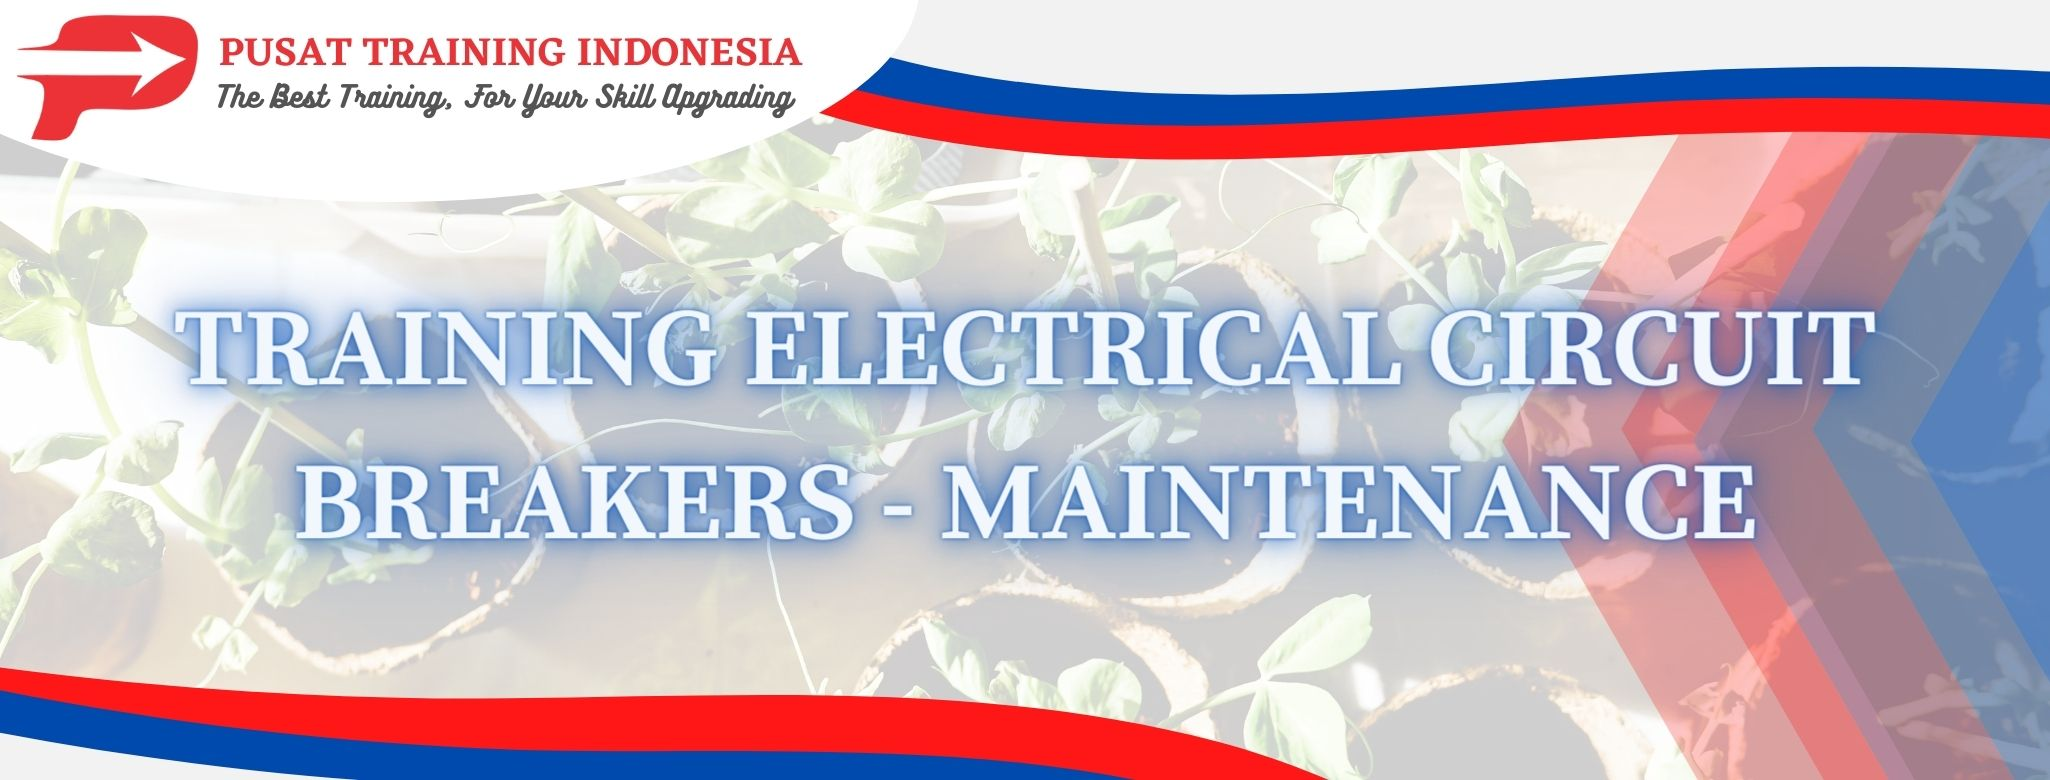 training-electrical-circuit-breakers-maintenance